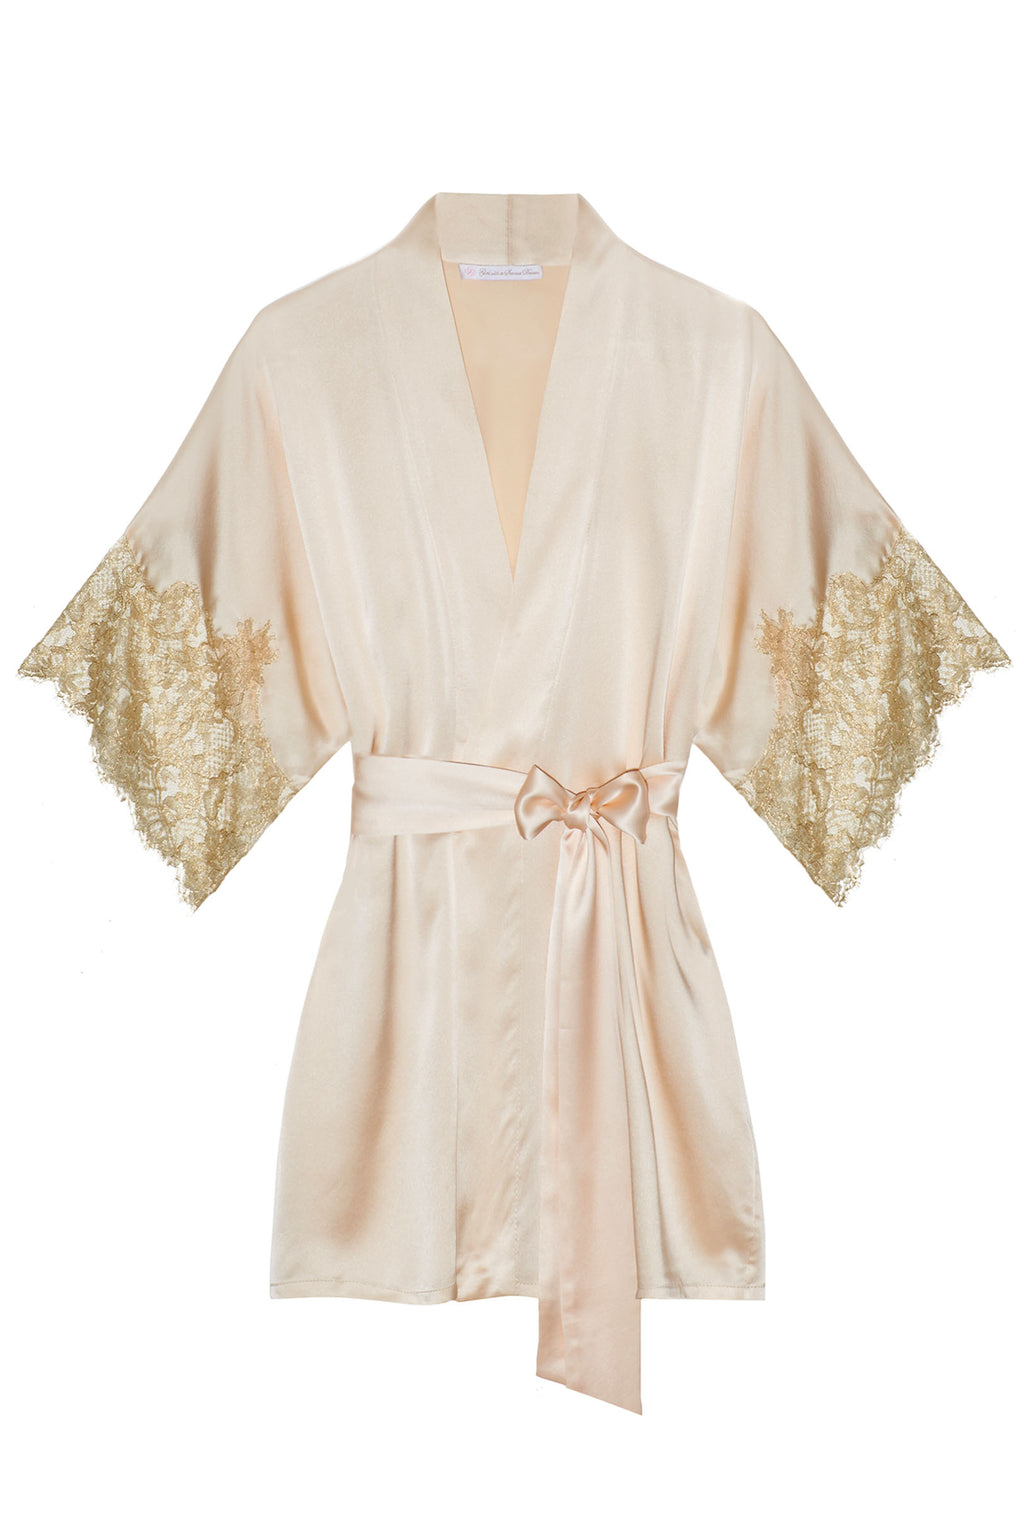 Tara Gilded Silk Kimono robe in Blush pink + gold lace